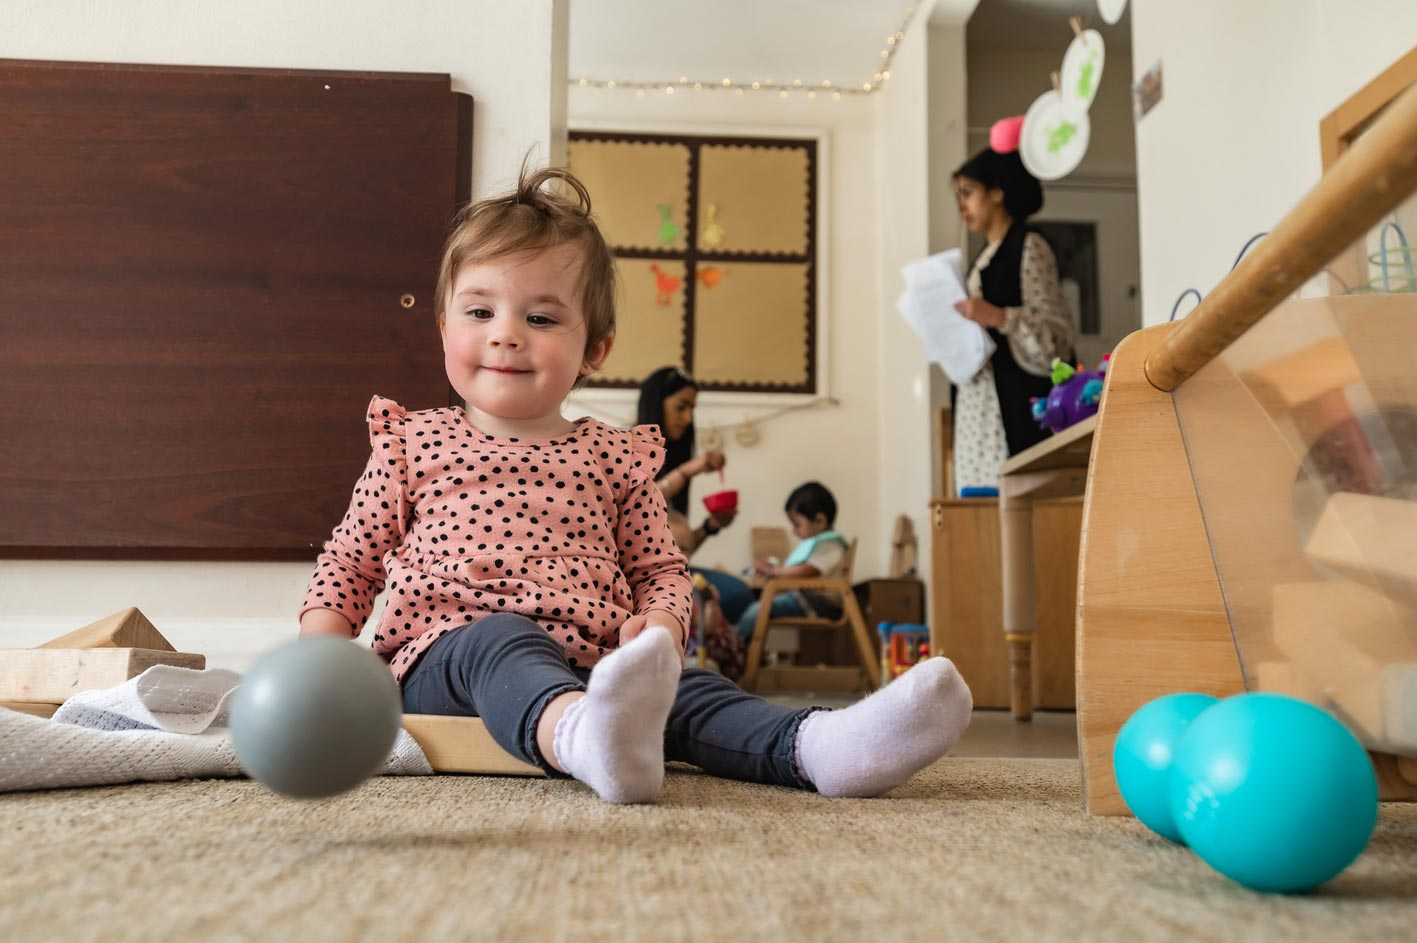 A child plays with a ball.